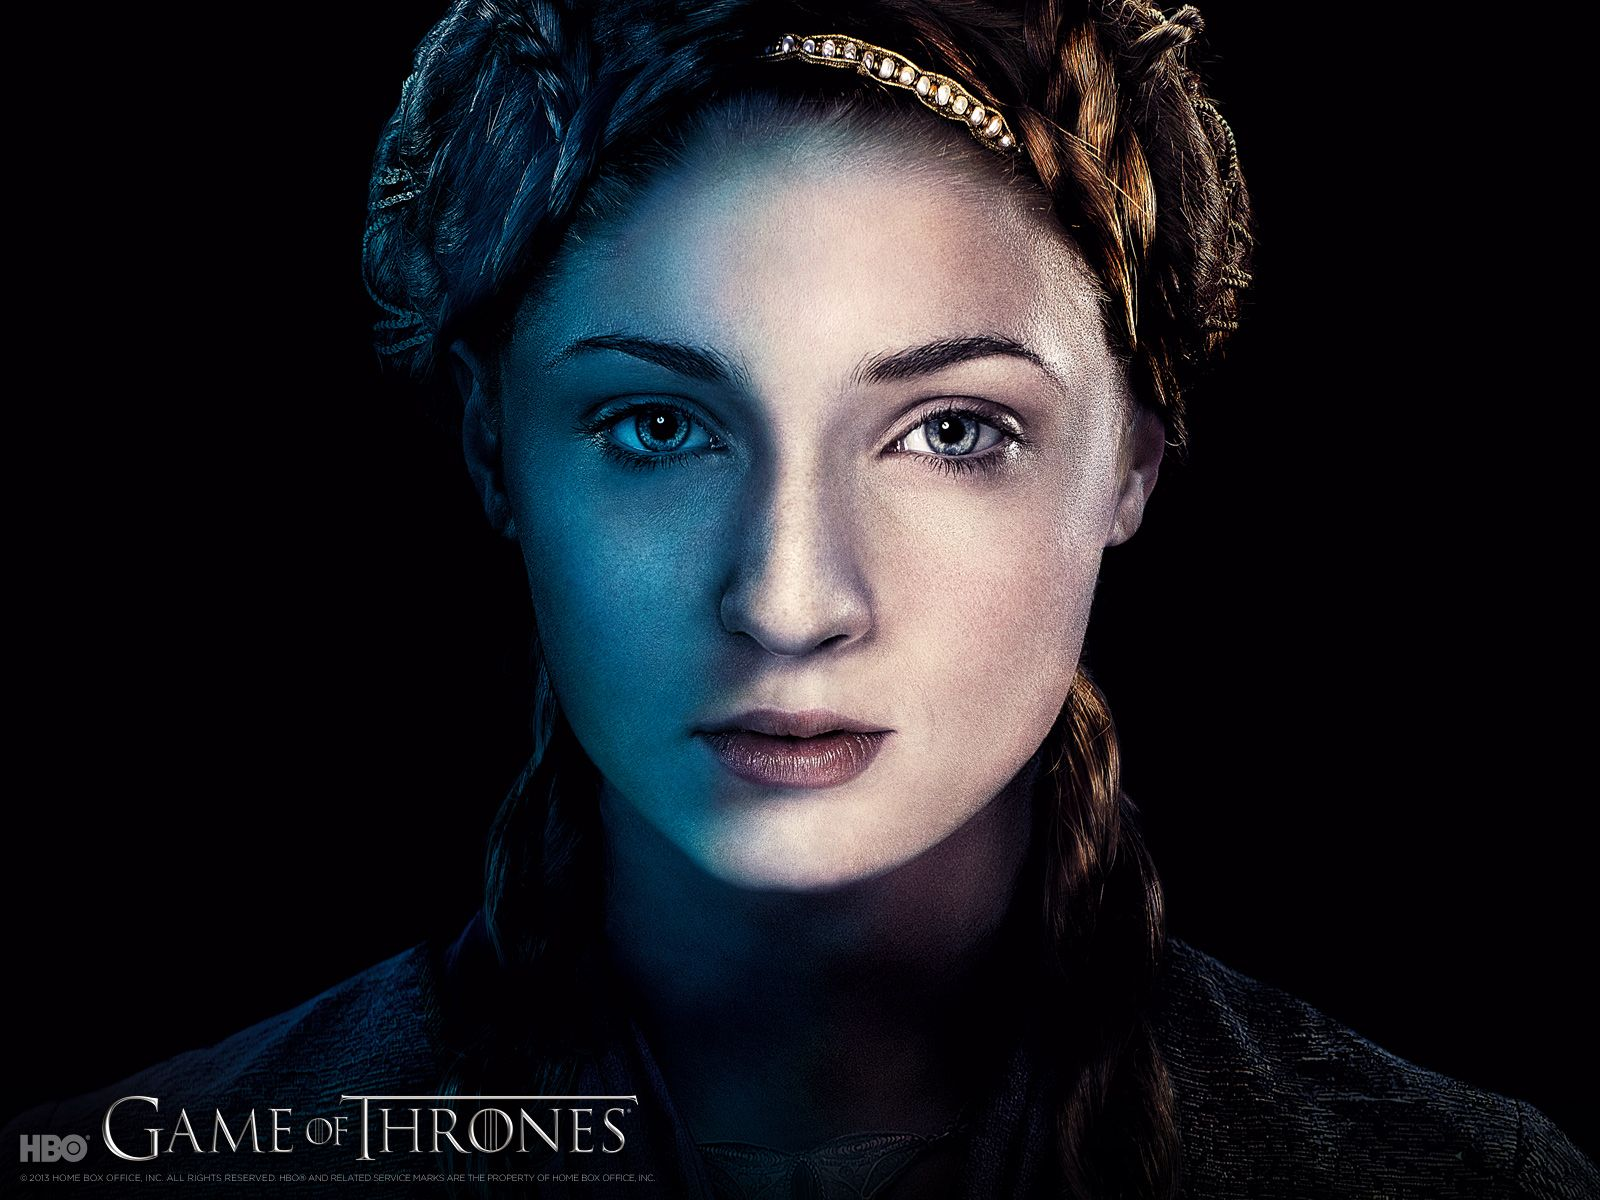 game of thrones season 3 episode 2 promo